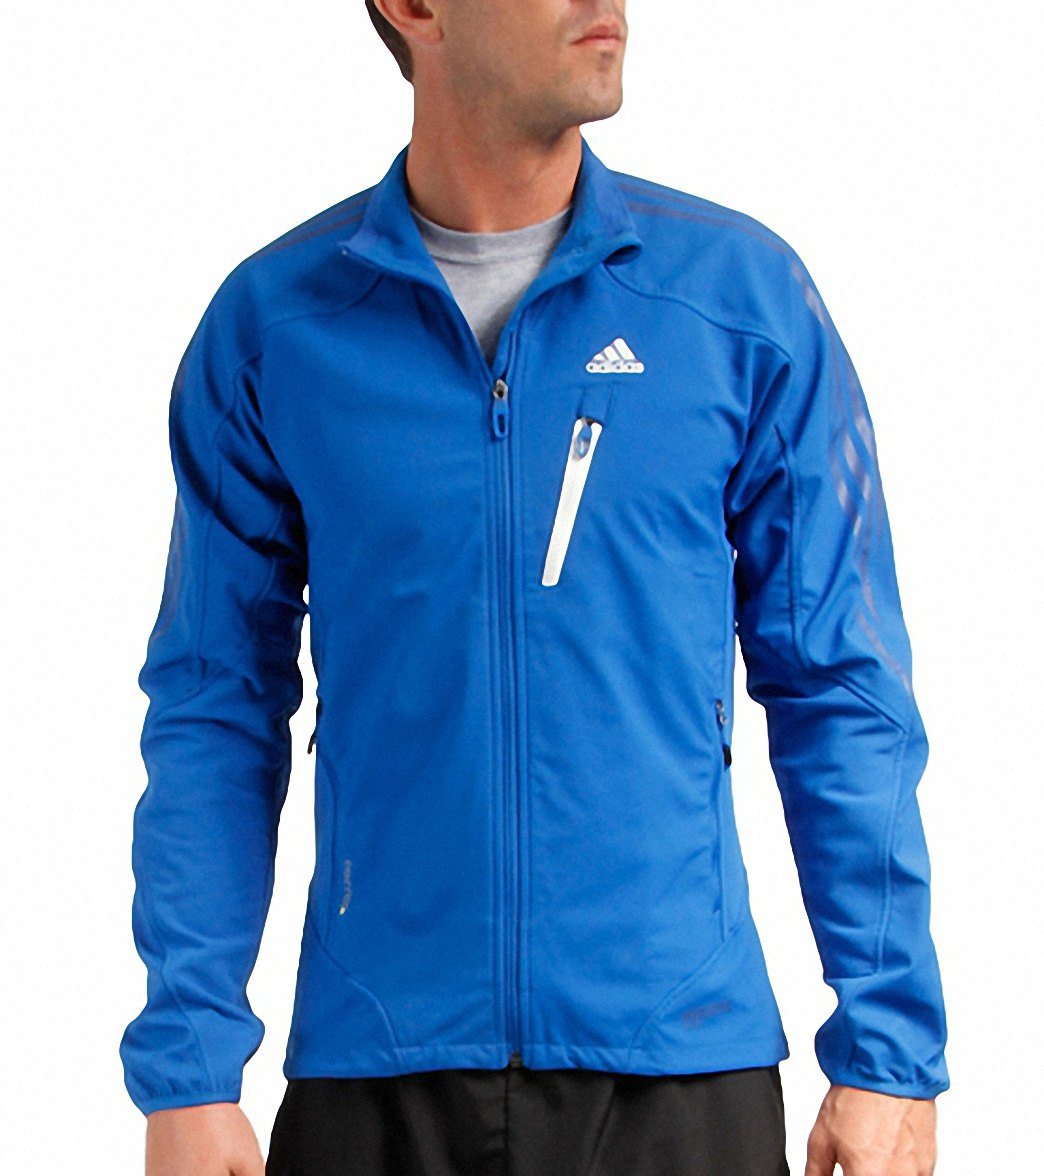 outlet adidas running jacket